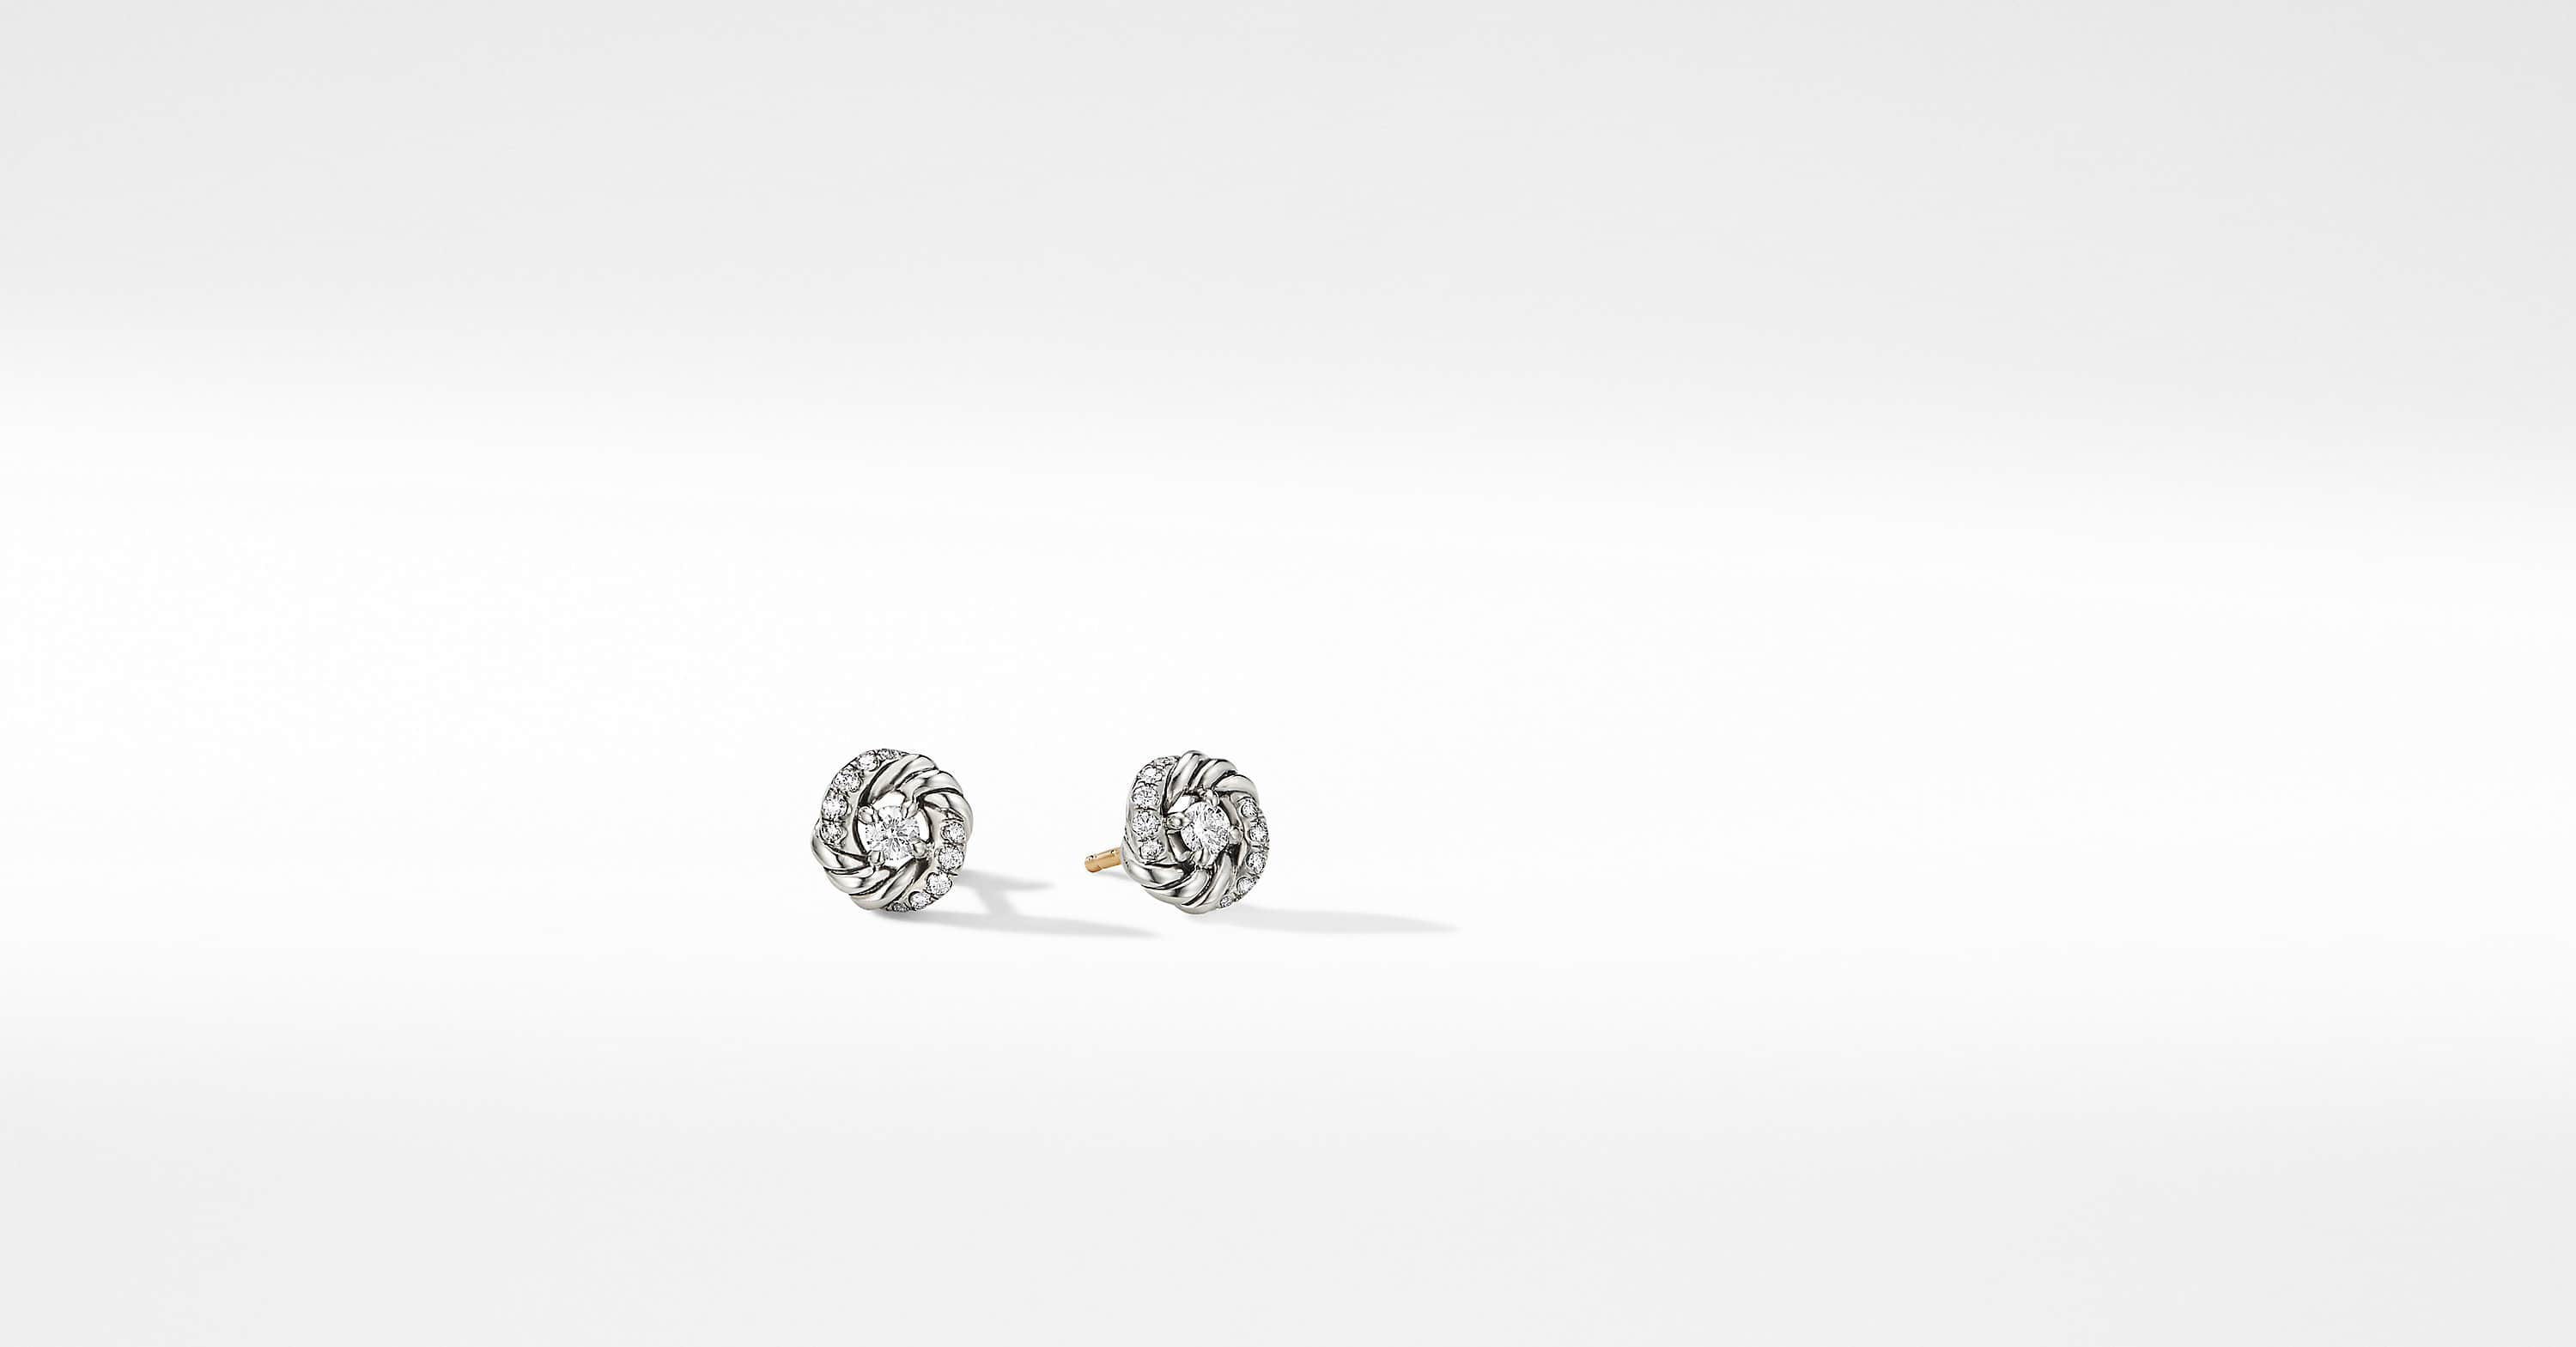 Petite Infinity Stud Earrings with Diamonds